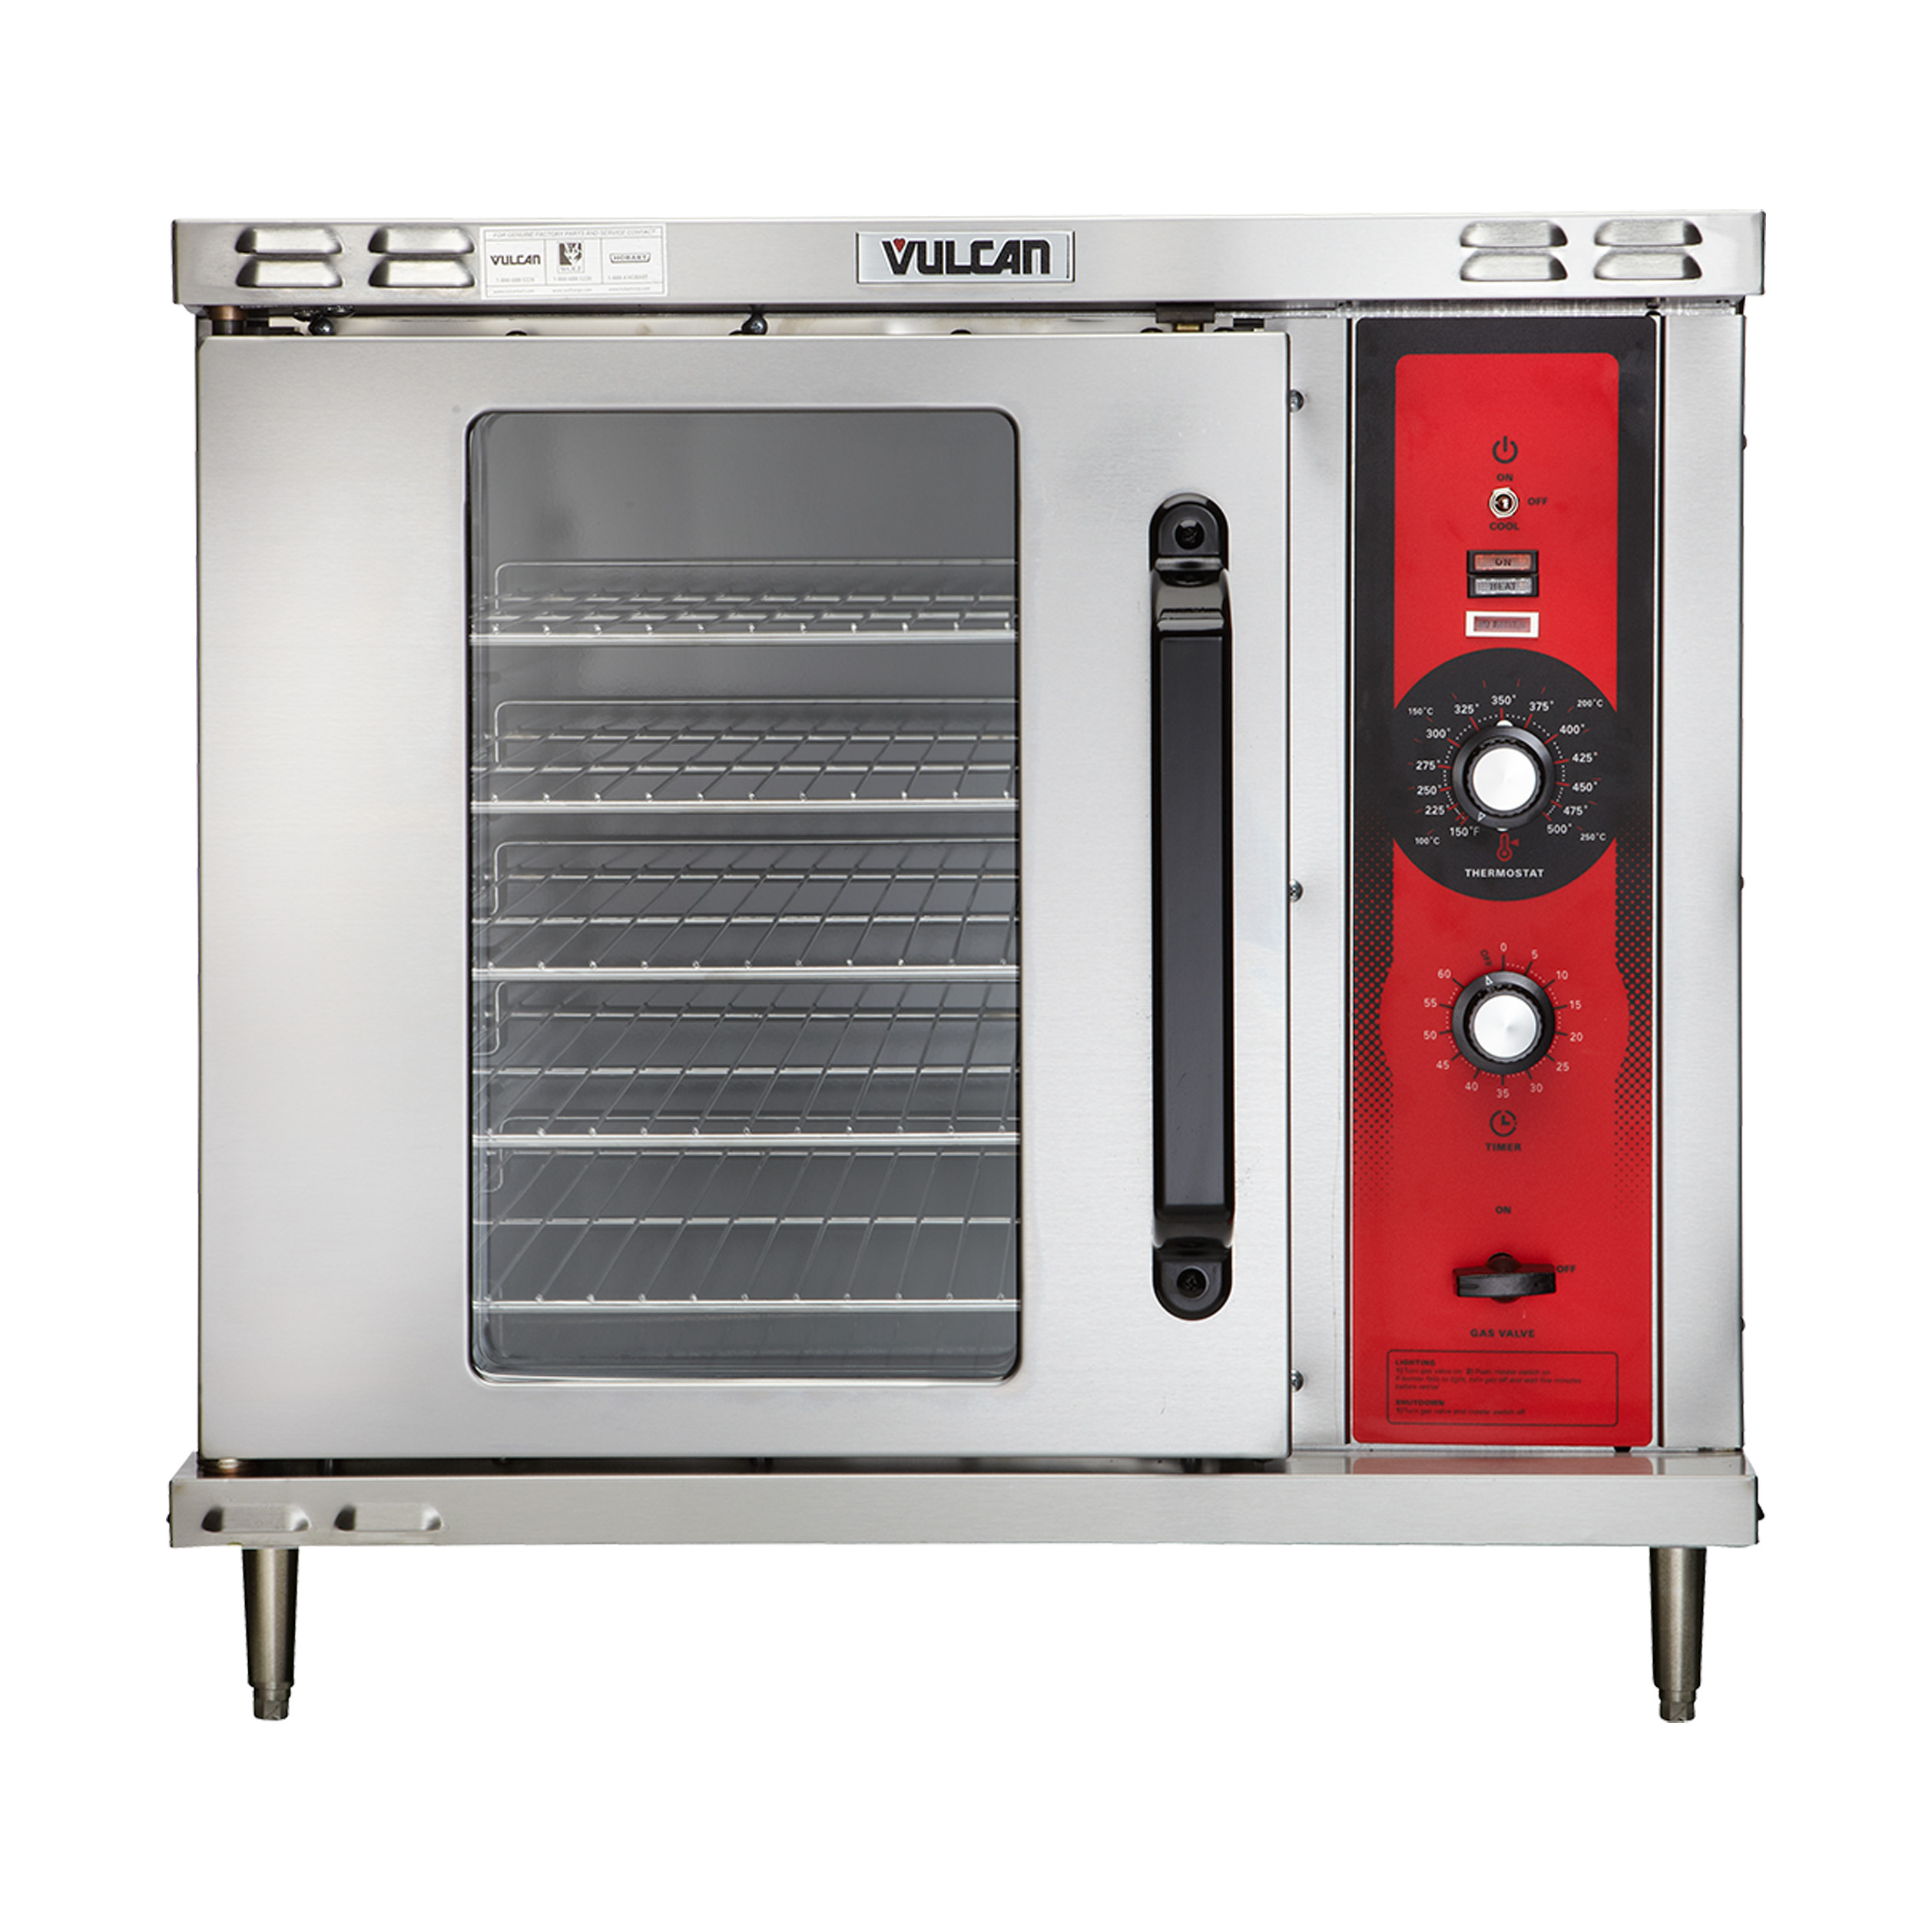 Vulcan GCO2D convection oven, gas